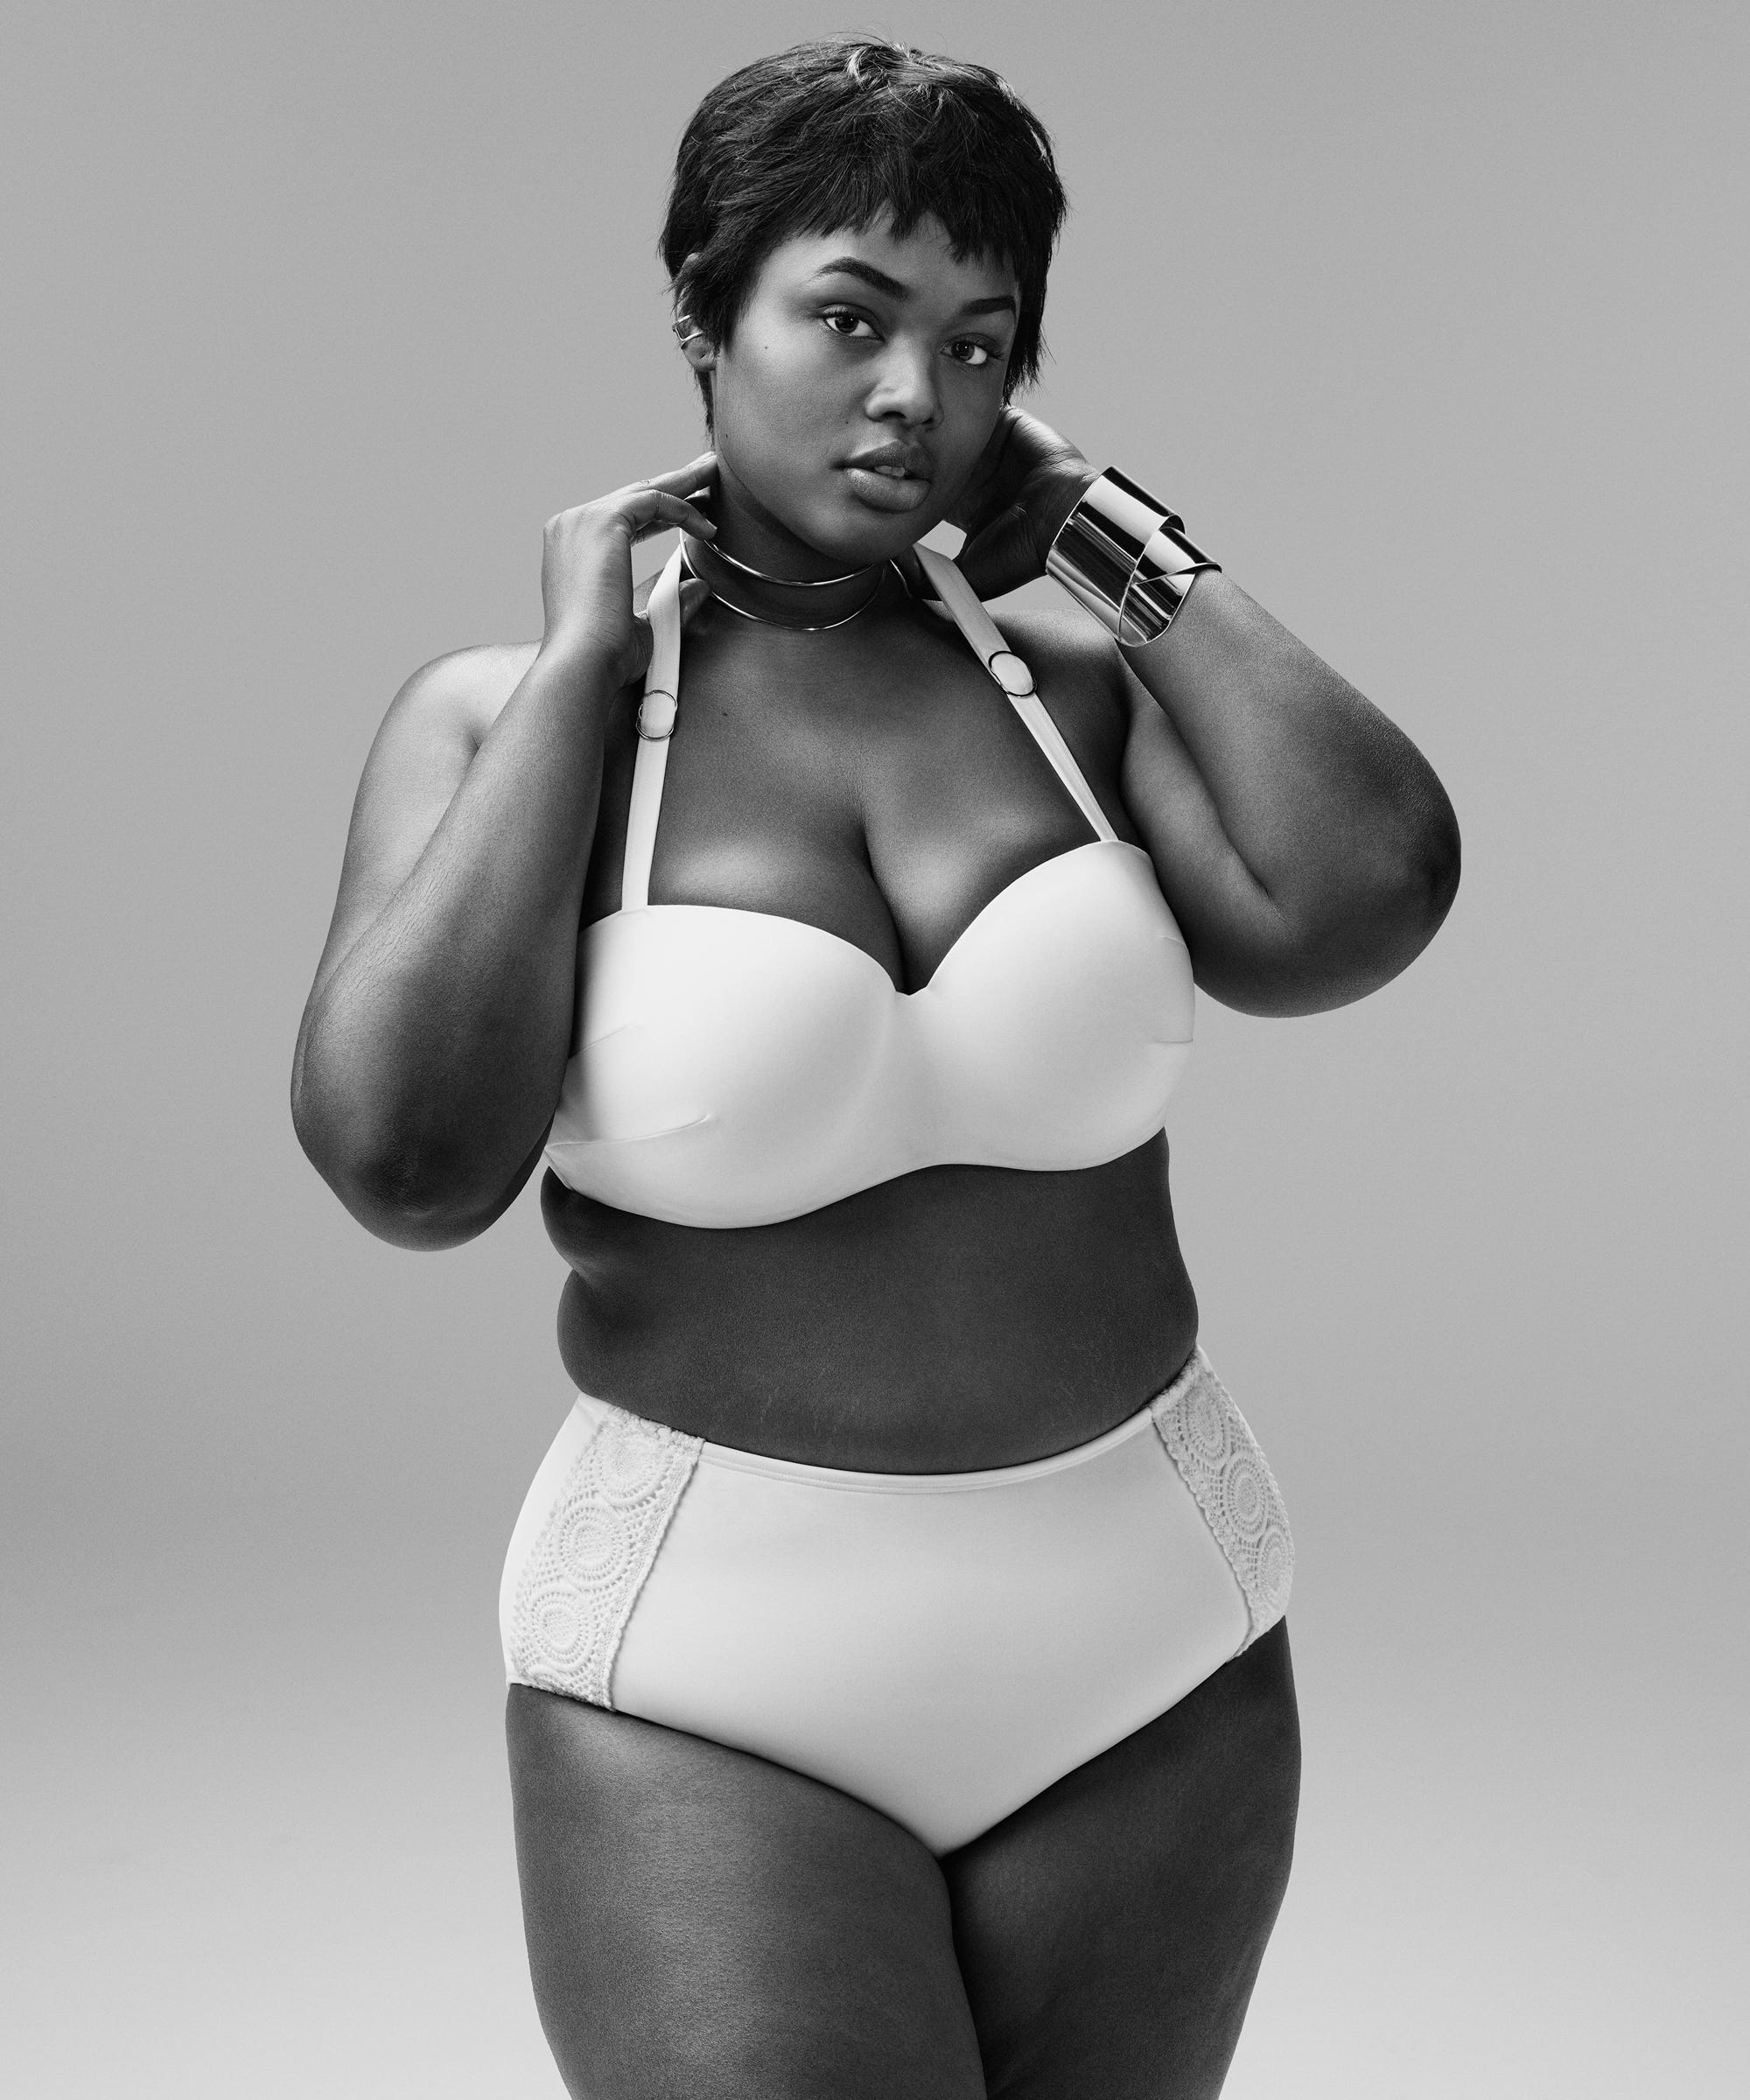 bd02aa67cae0a Lane Bryant TV Ad Banned